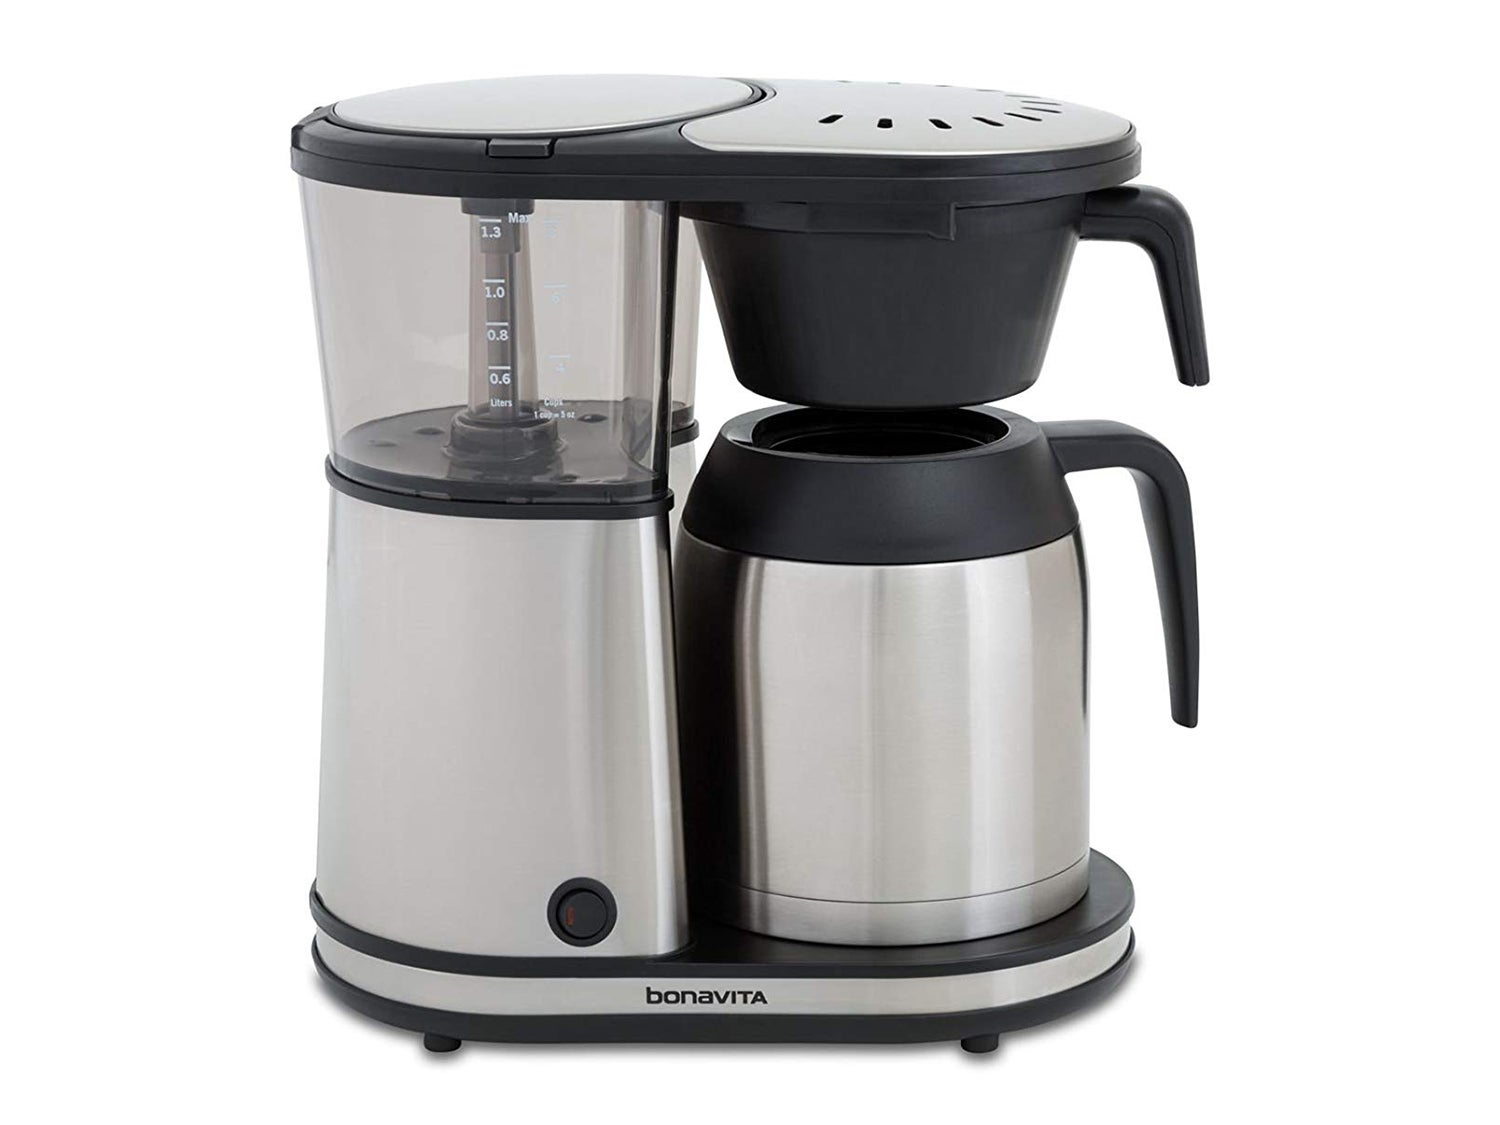 Bonavita Connoisseur 8-Cup One-Touch Coffee Maker Featuring Hanging Filter Basket and Thermal Carafe